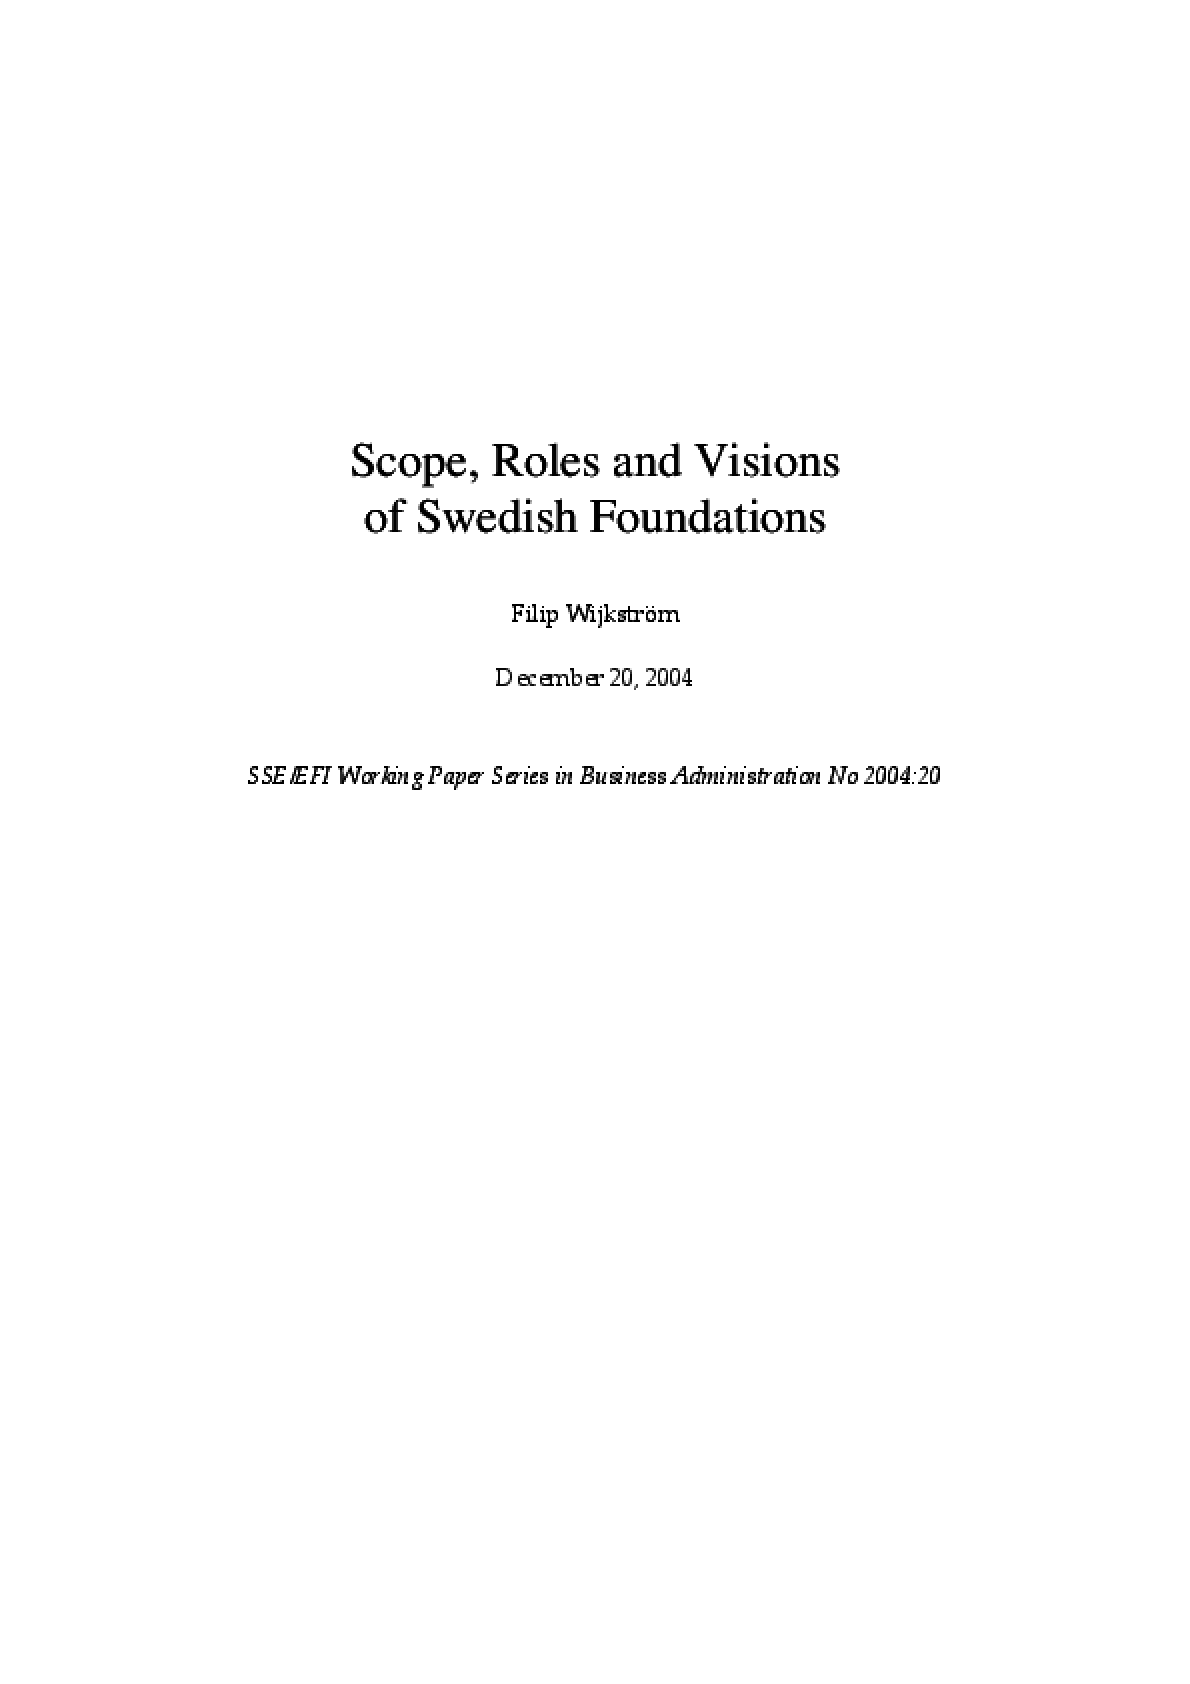 Scope, Roles and Visions of Swedish Foundations